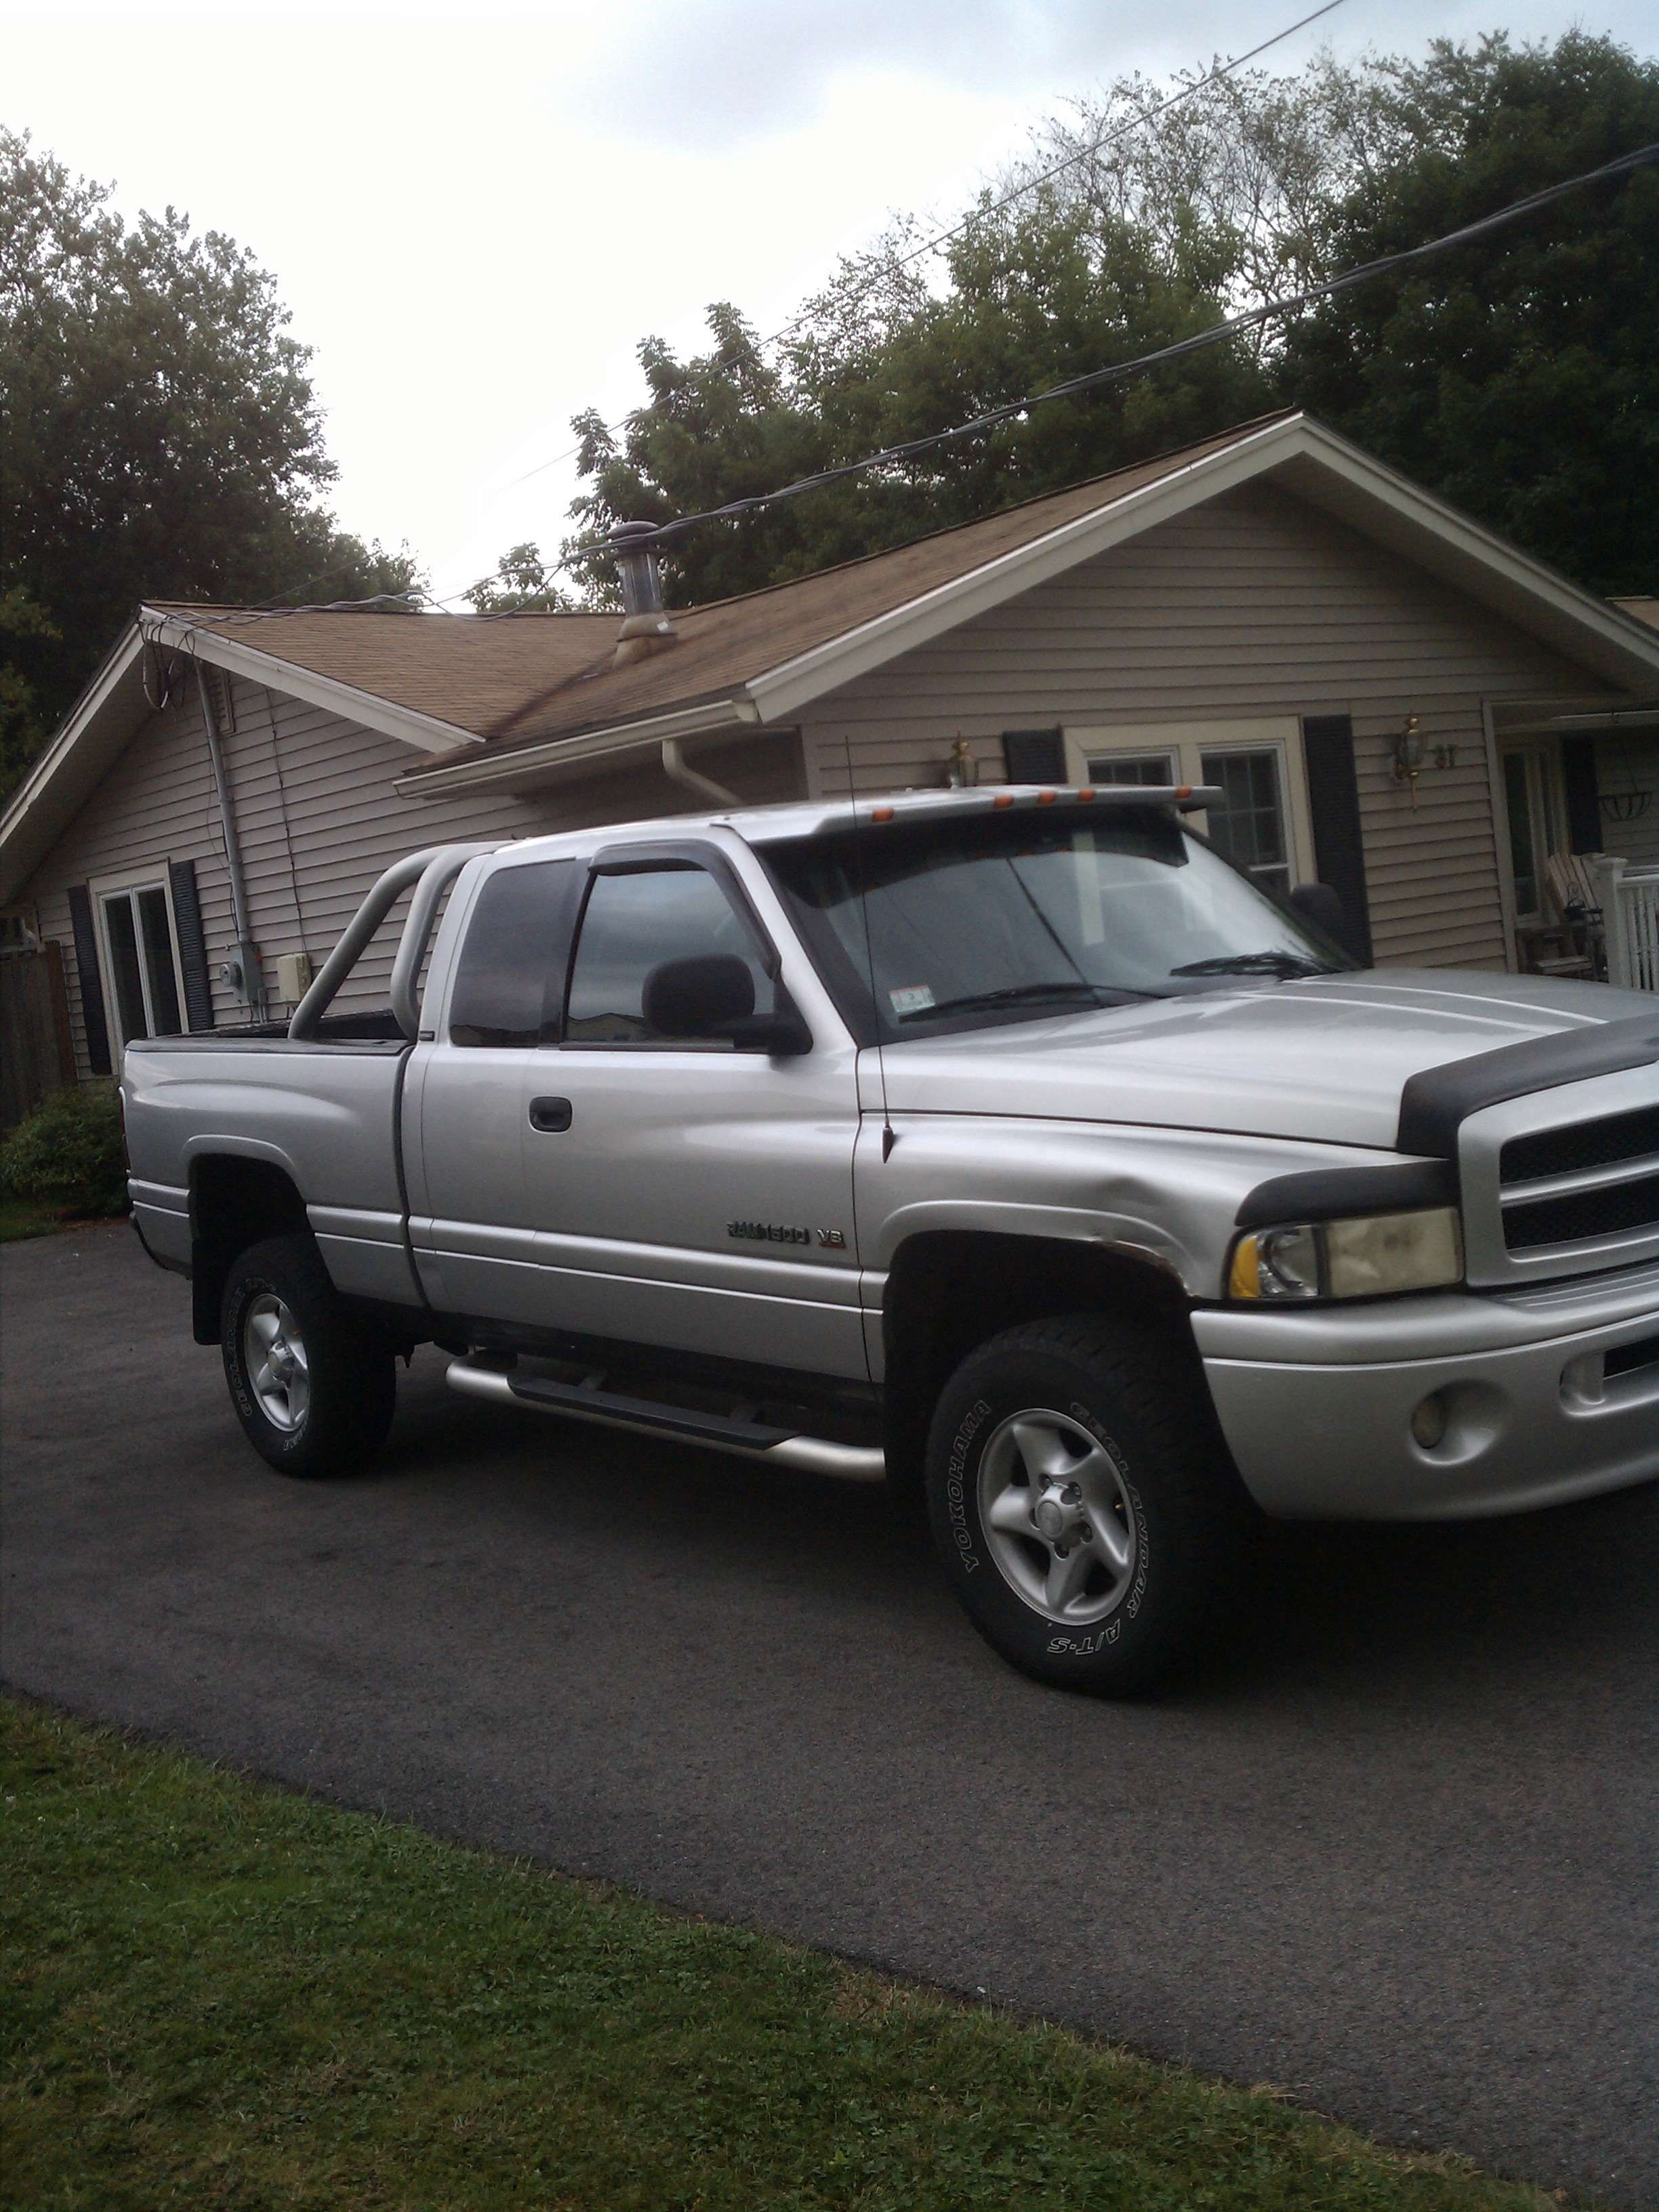 small resolution of make dodge model ram 1500 truck year 2001 body style extended cab